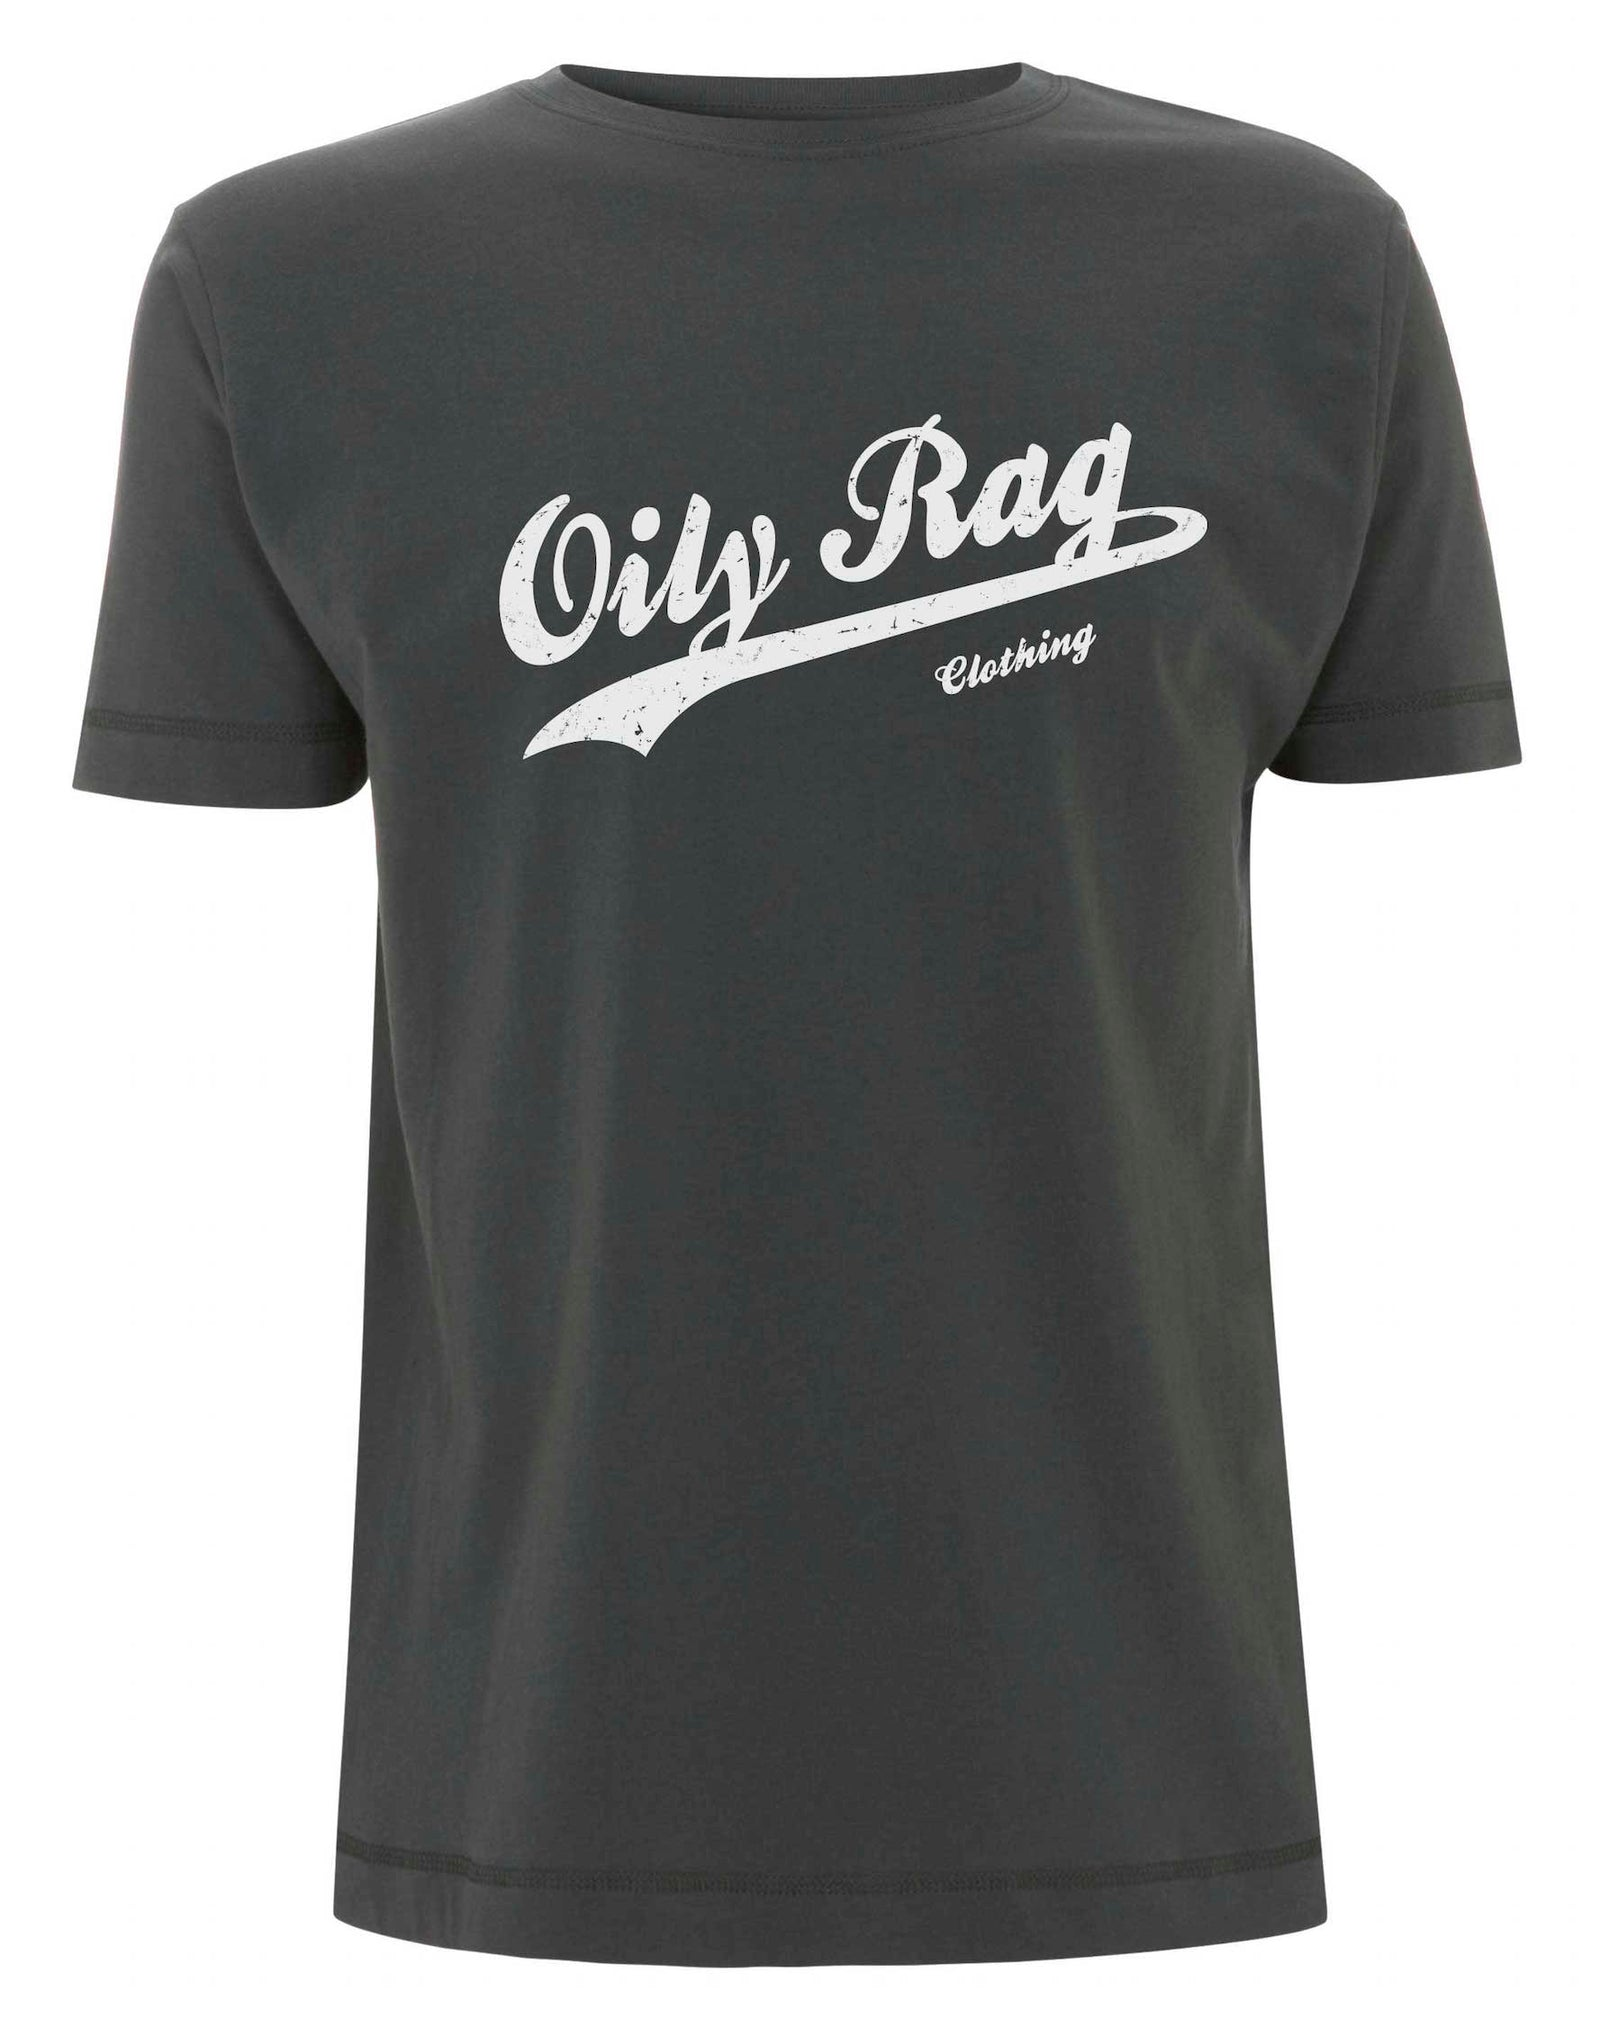 Oily Rag Clothing Classic retro T'shirt